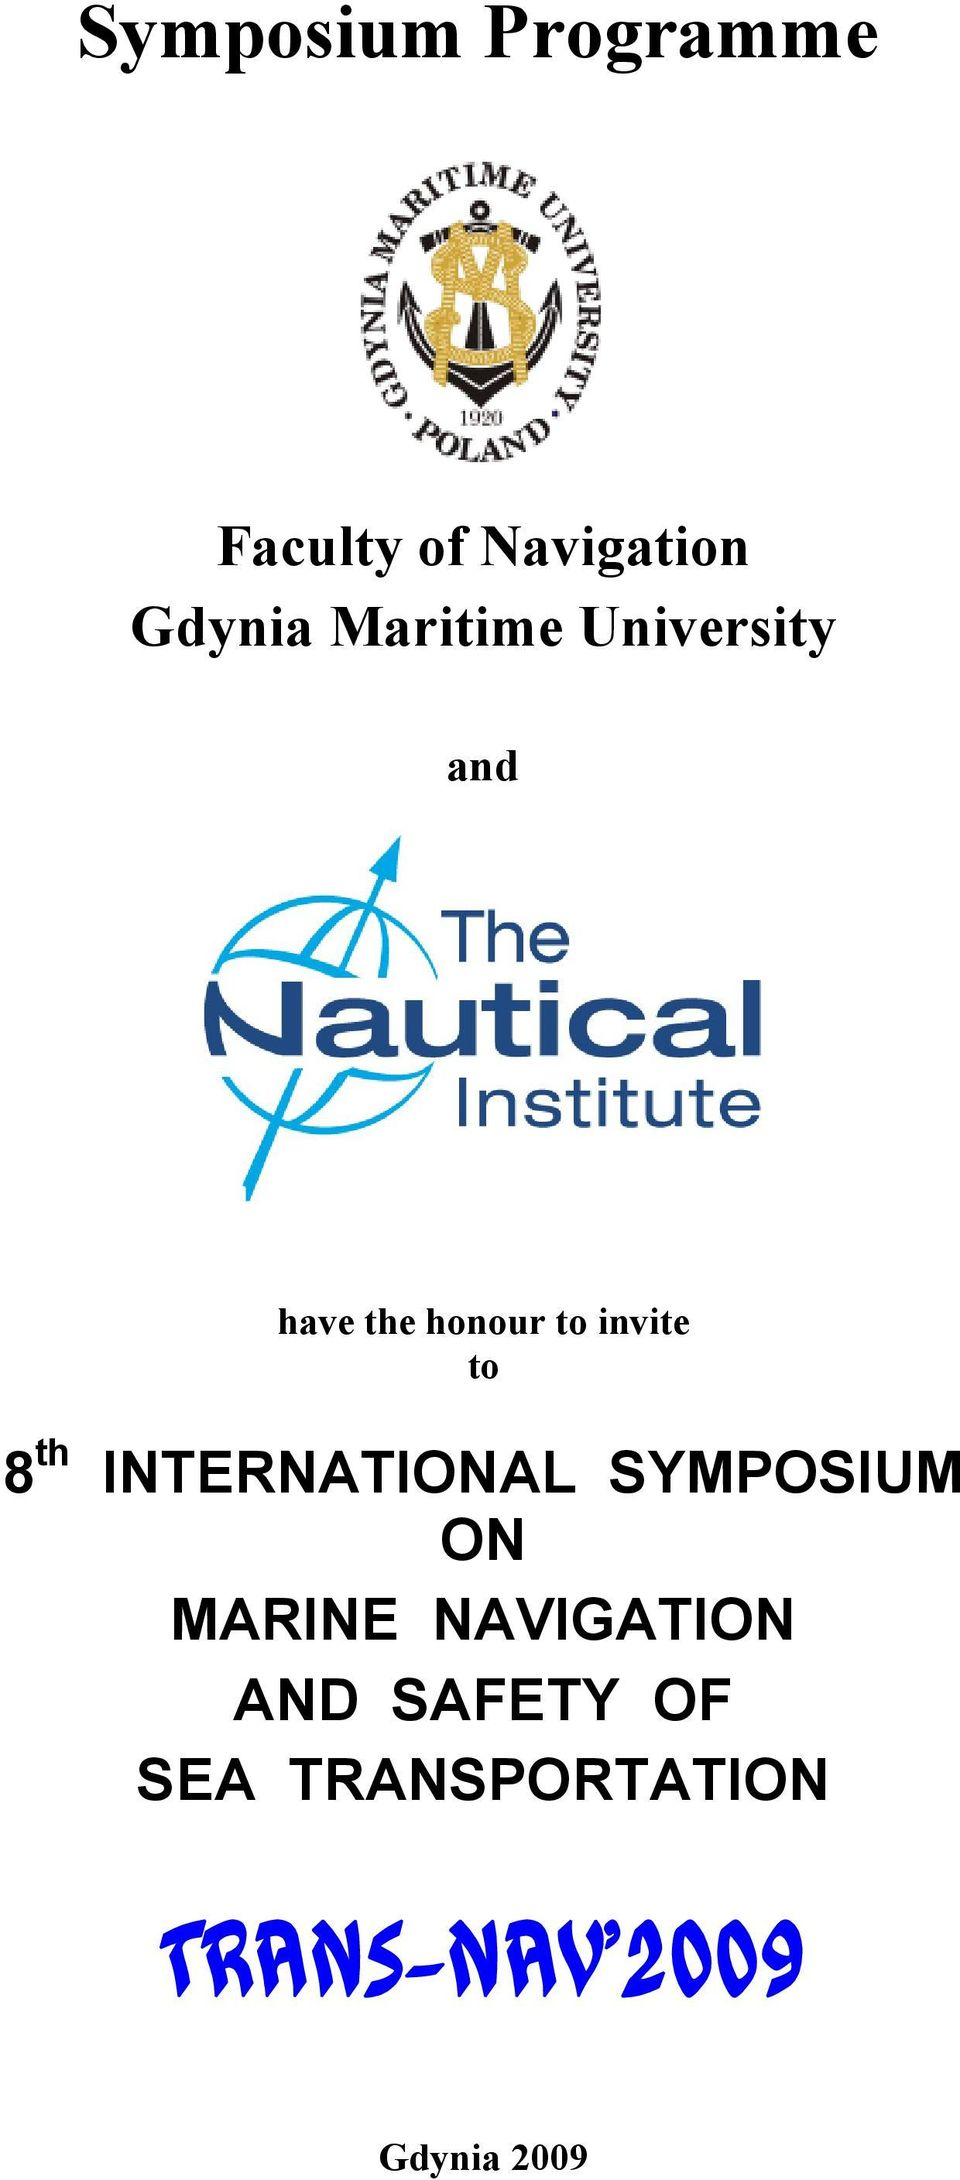 8 th INTERNATIONAL SYMPOSIUM ON MARINE NAVIGATION